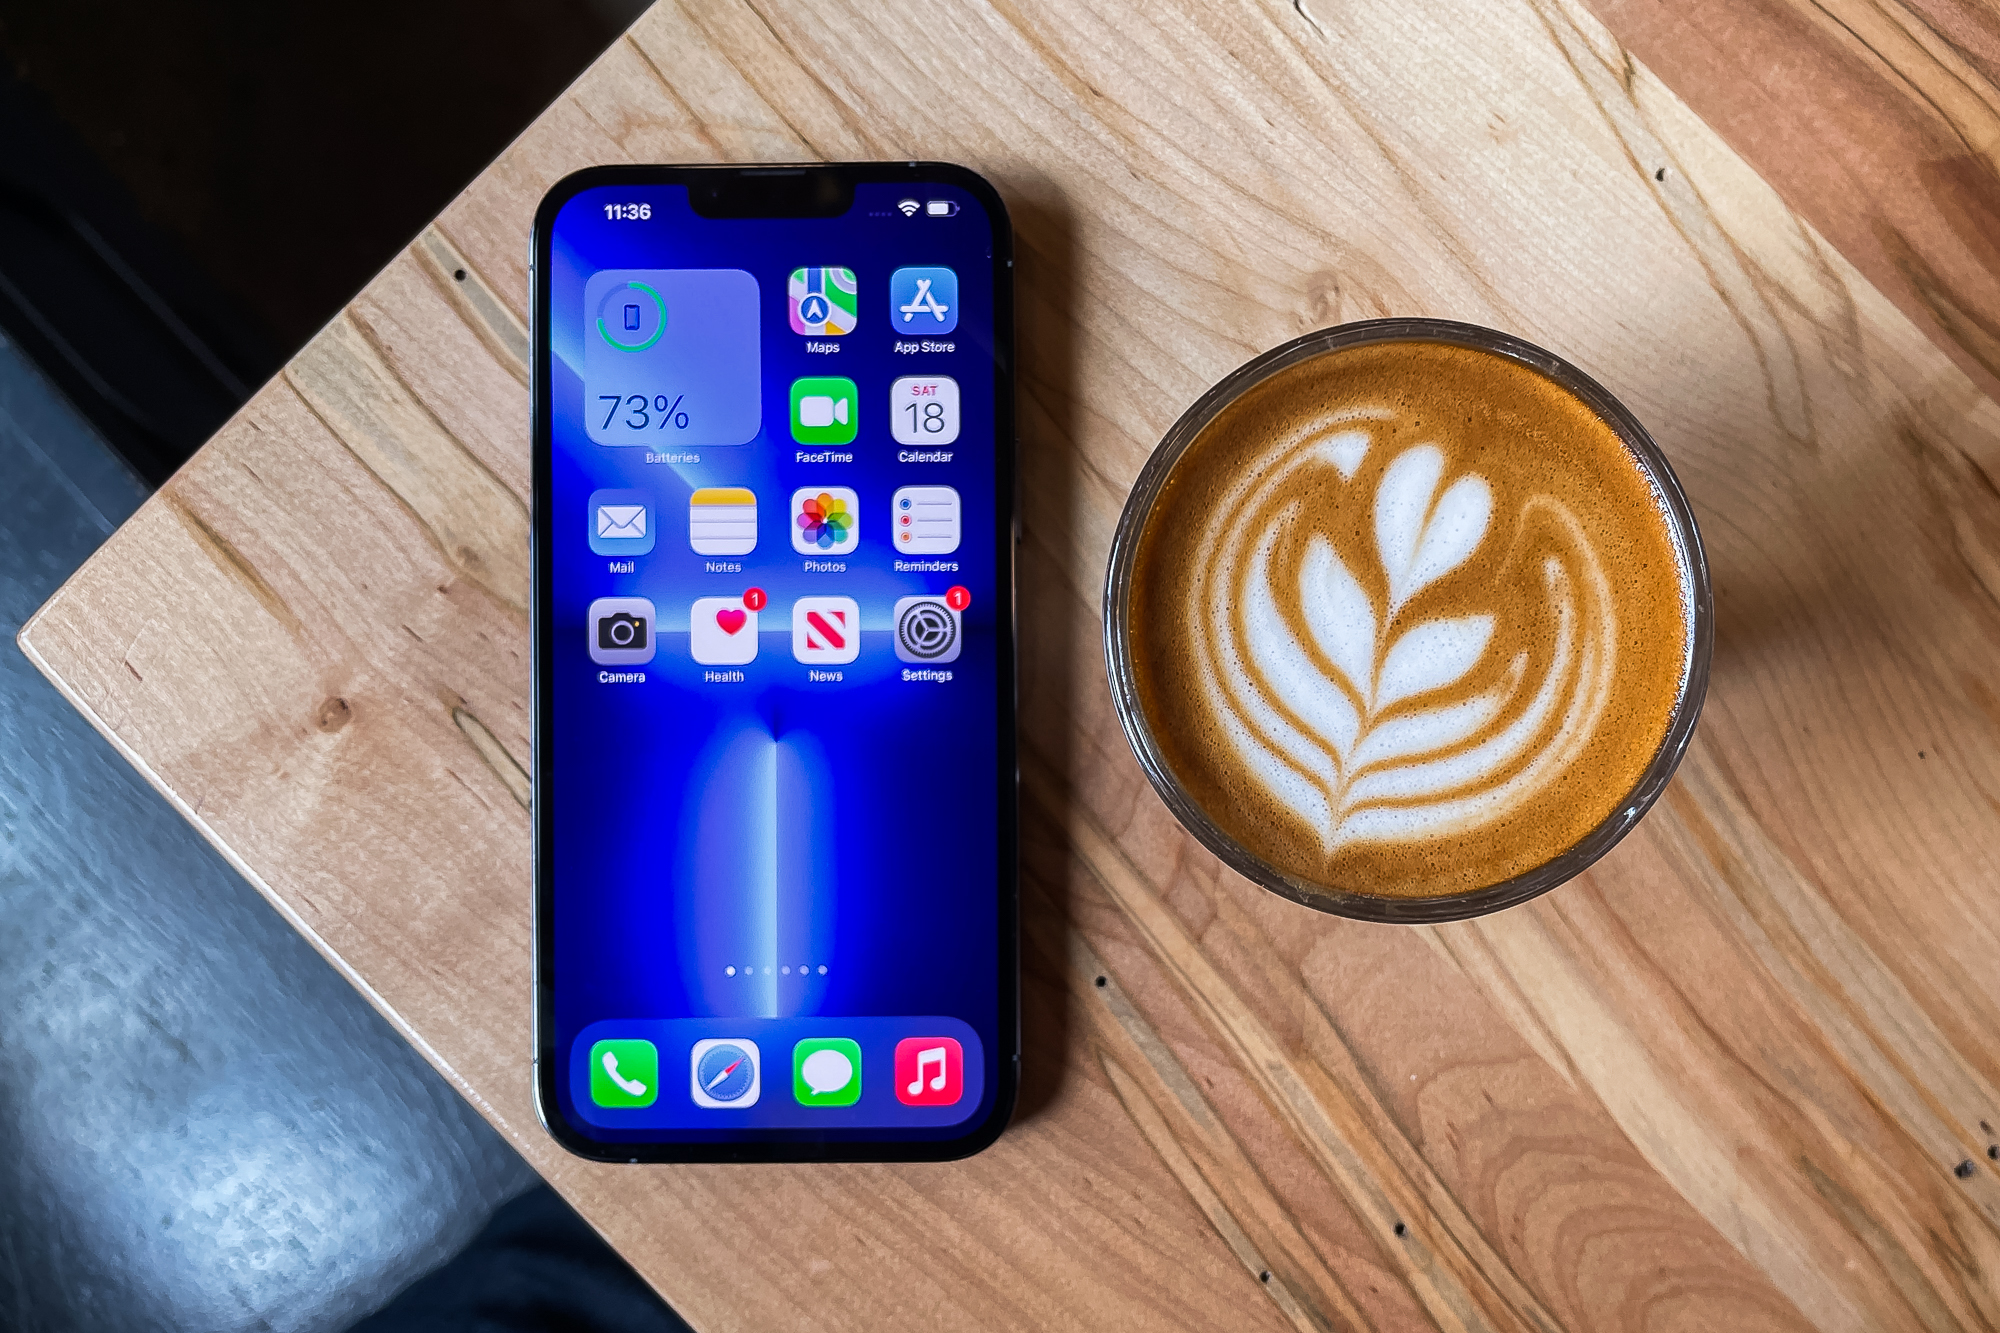 iphone-13-pro-max-cnet-2021-review-34